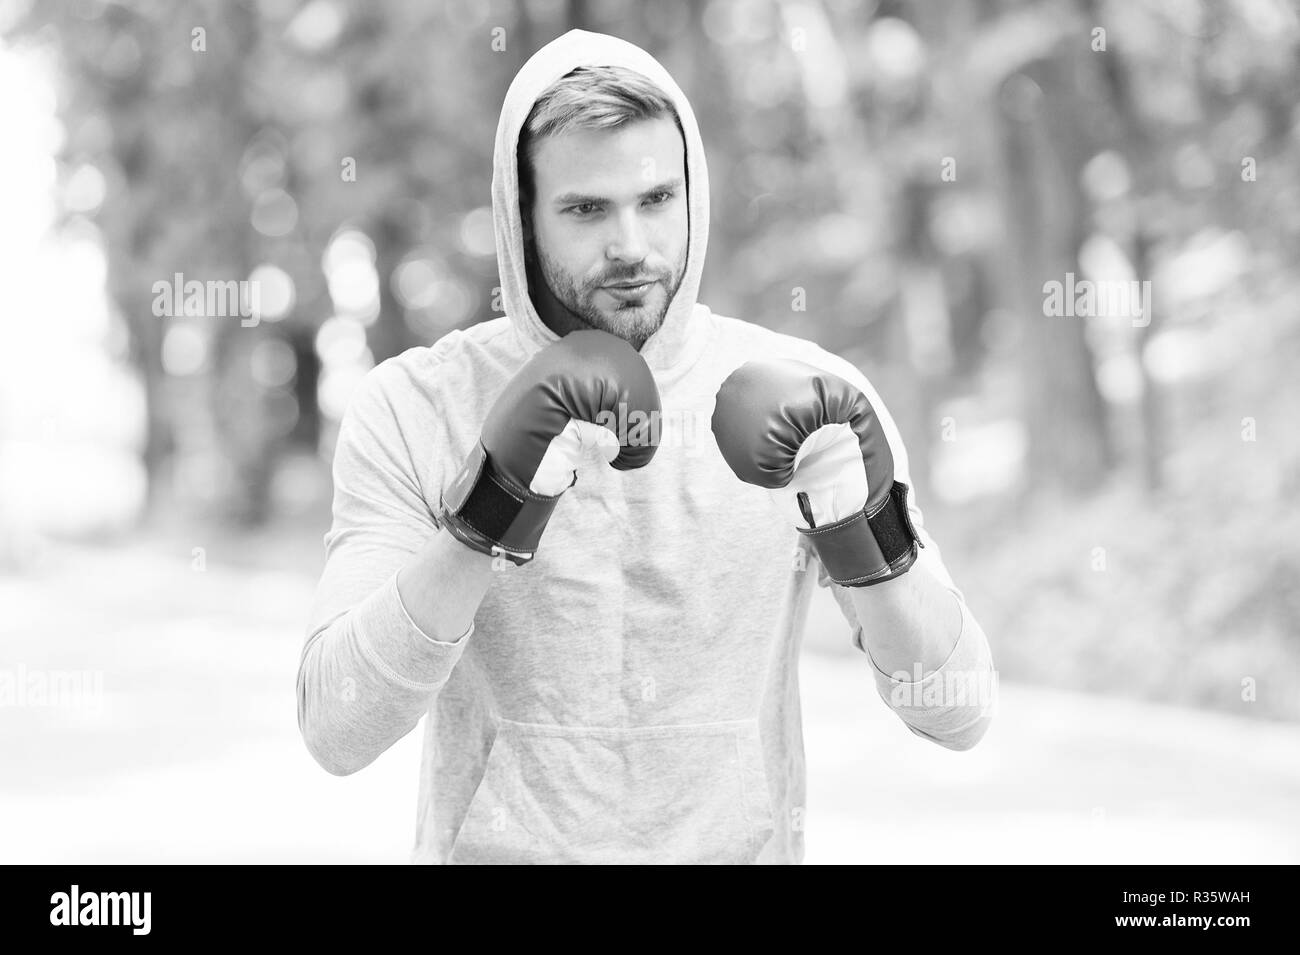 Training for big day. Man athlete on concentrated face with sport gloves practicing boxing punch, nature background. Boxer hood head practices jab punch. Sportsman boxer training with boxing gloves. - Stock Image